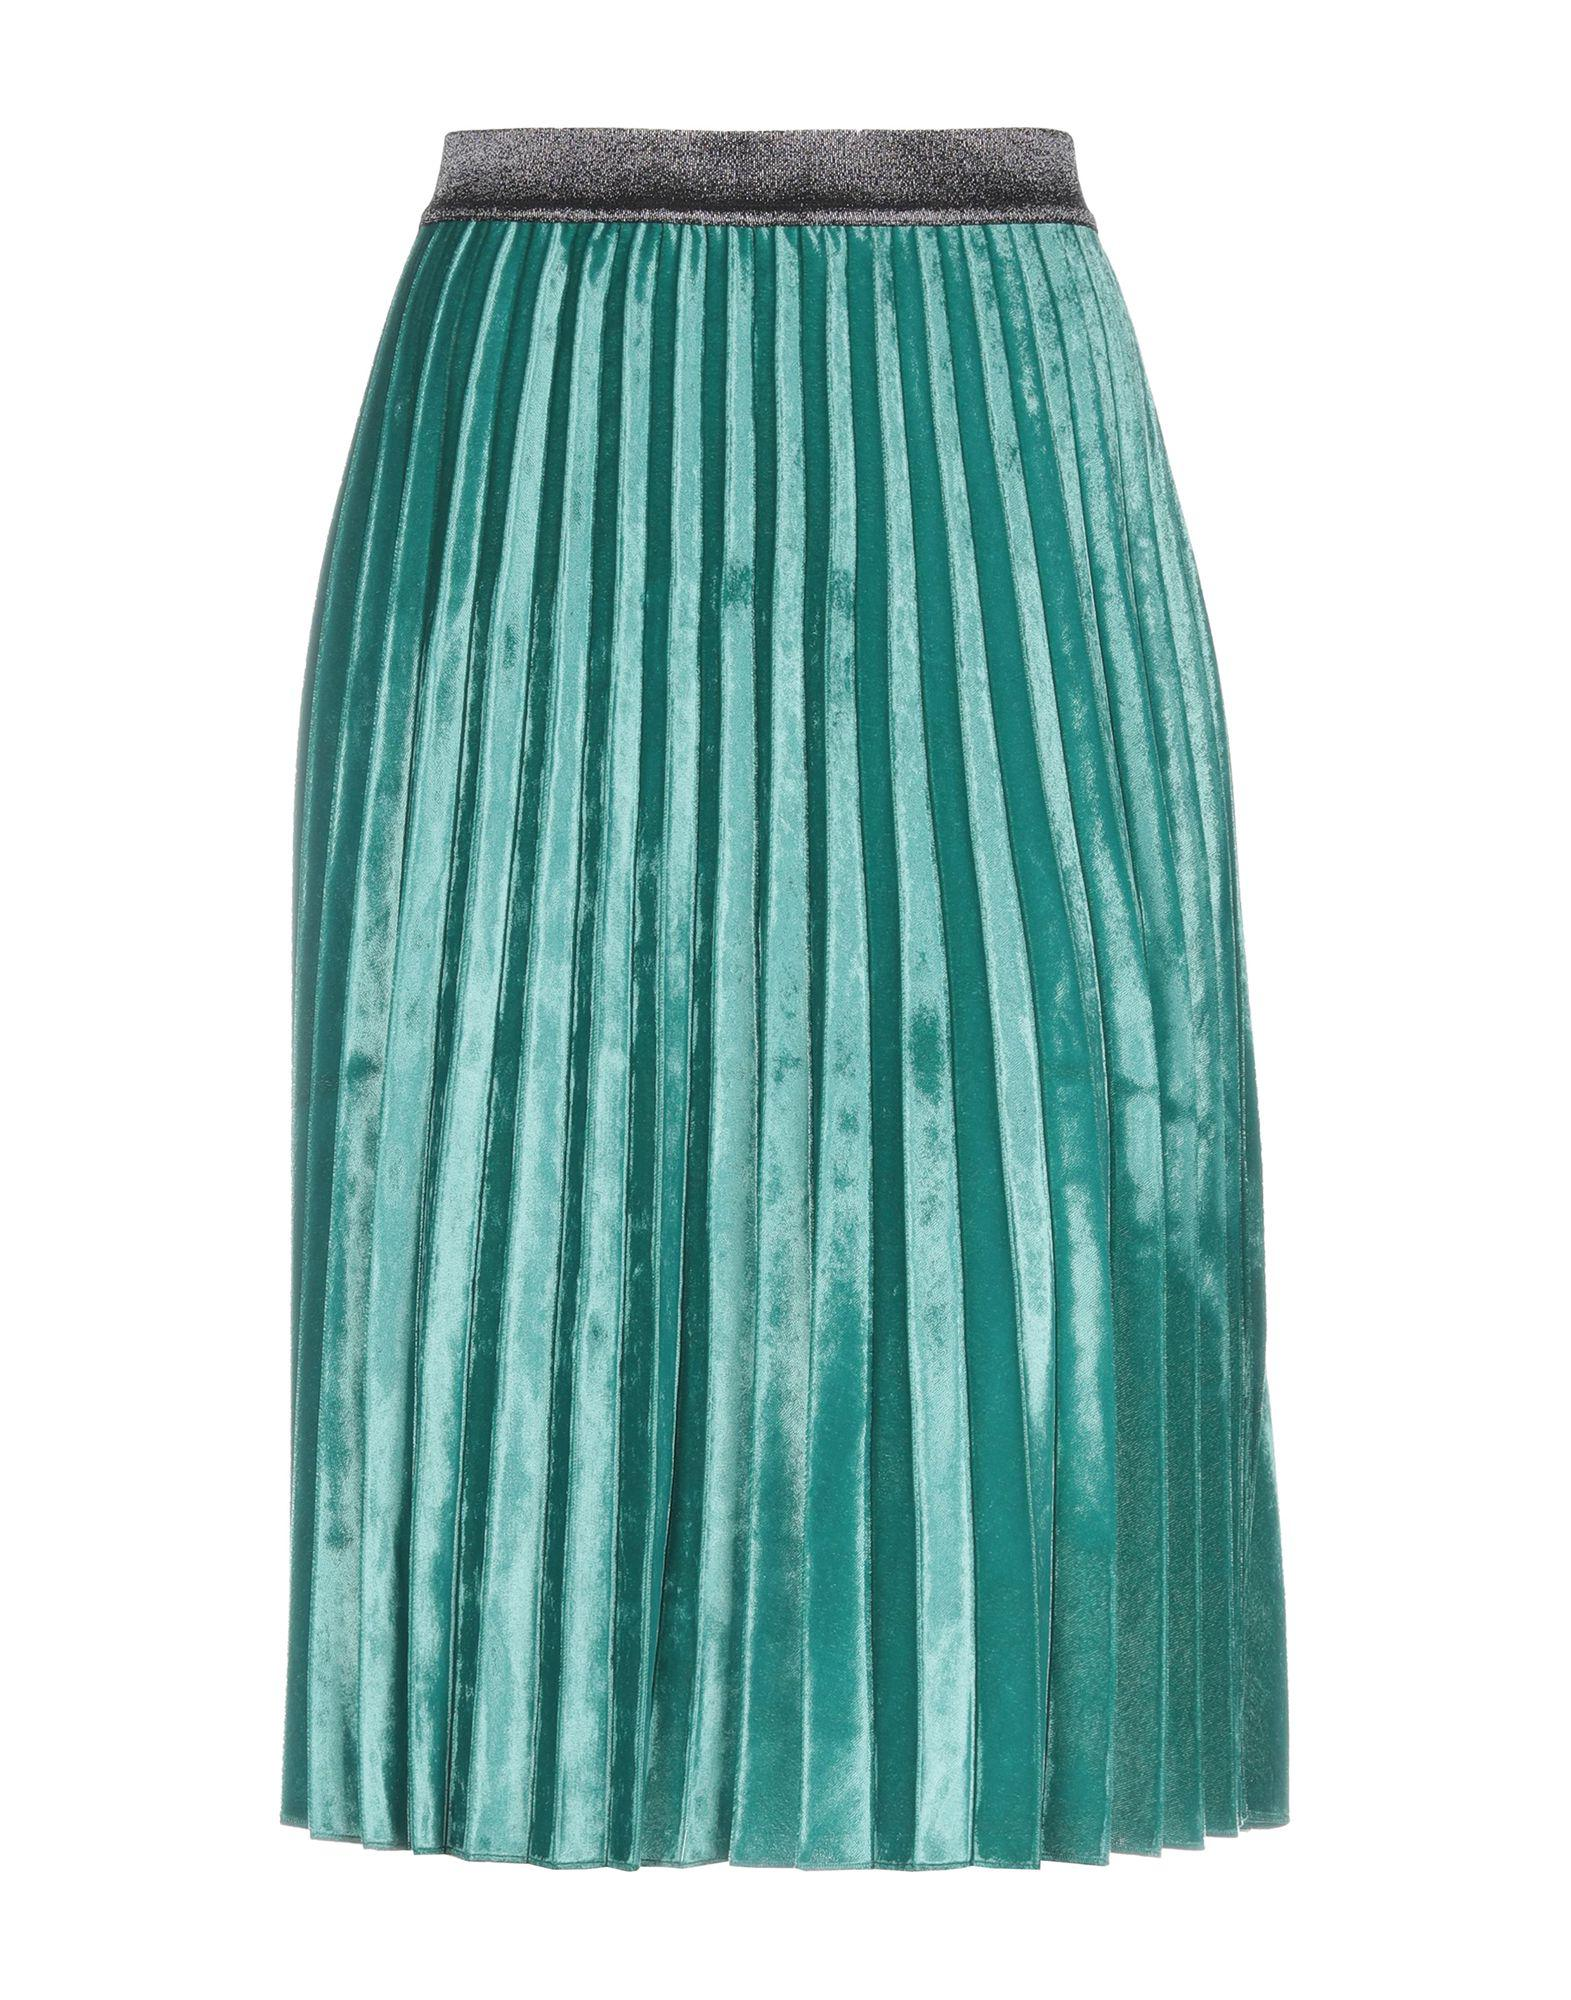 943aad8293 Pinko 3 4 Length Skirts in Green - Lyst